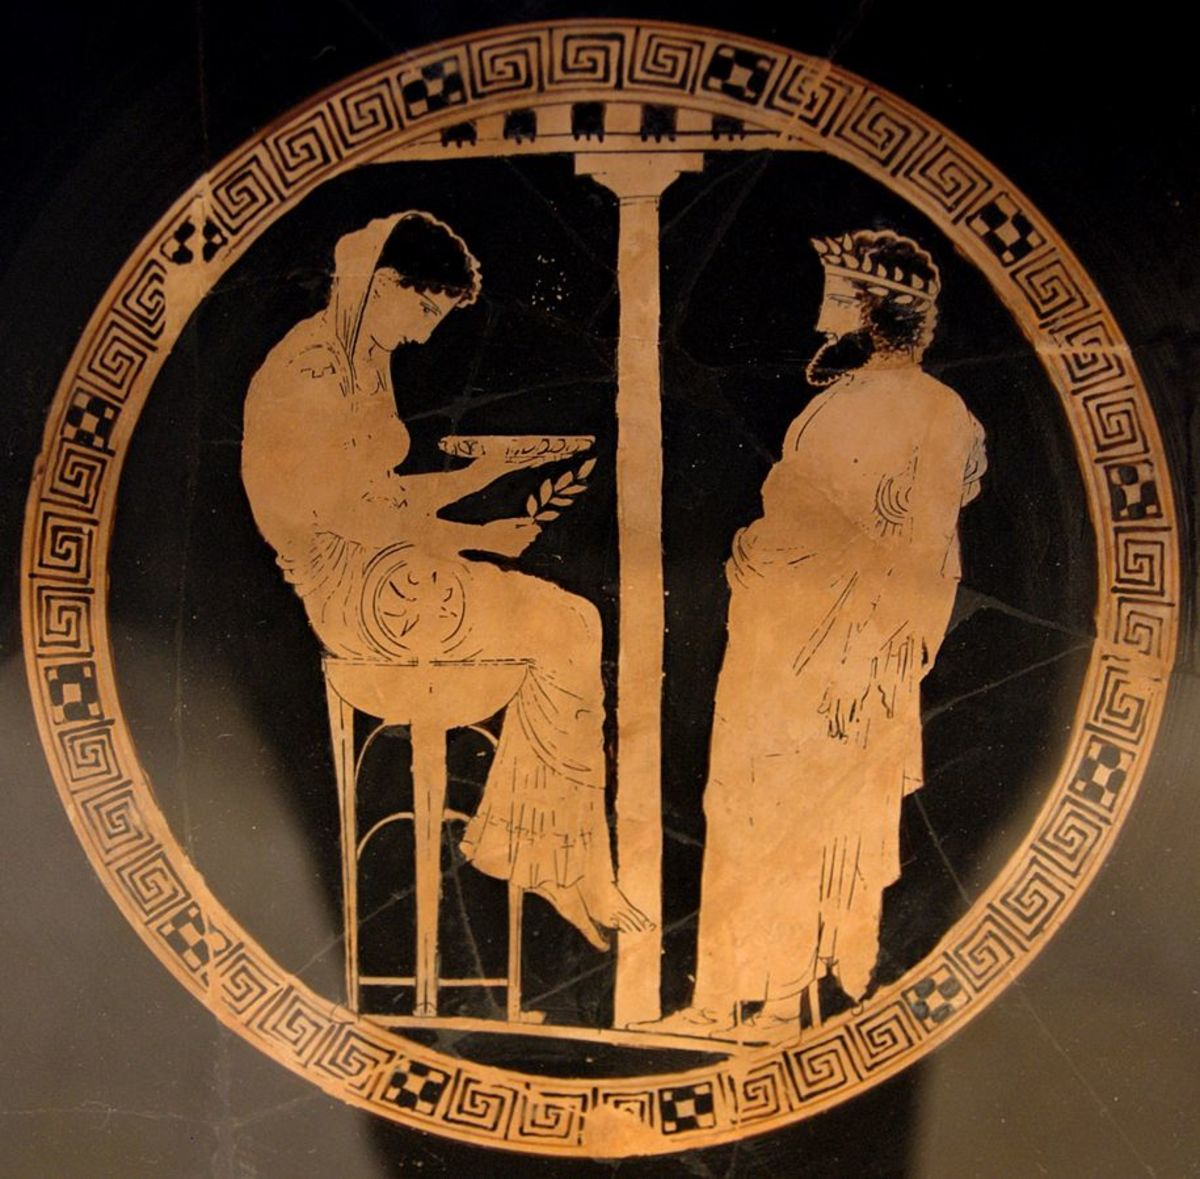 The Greek Myth of Theseus and the Minotaur